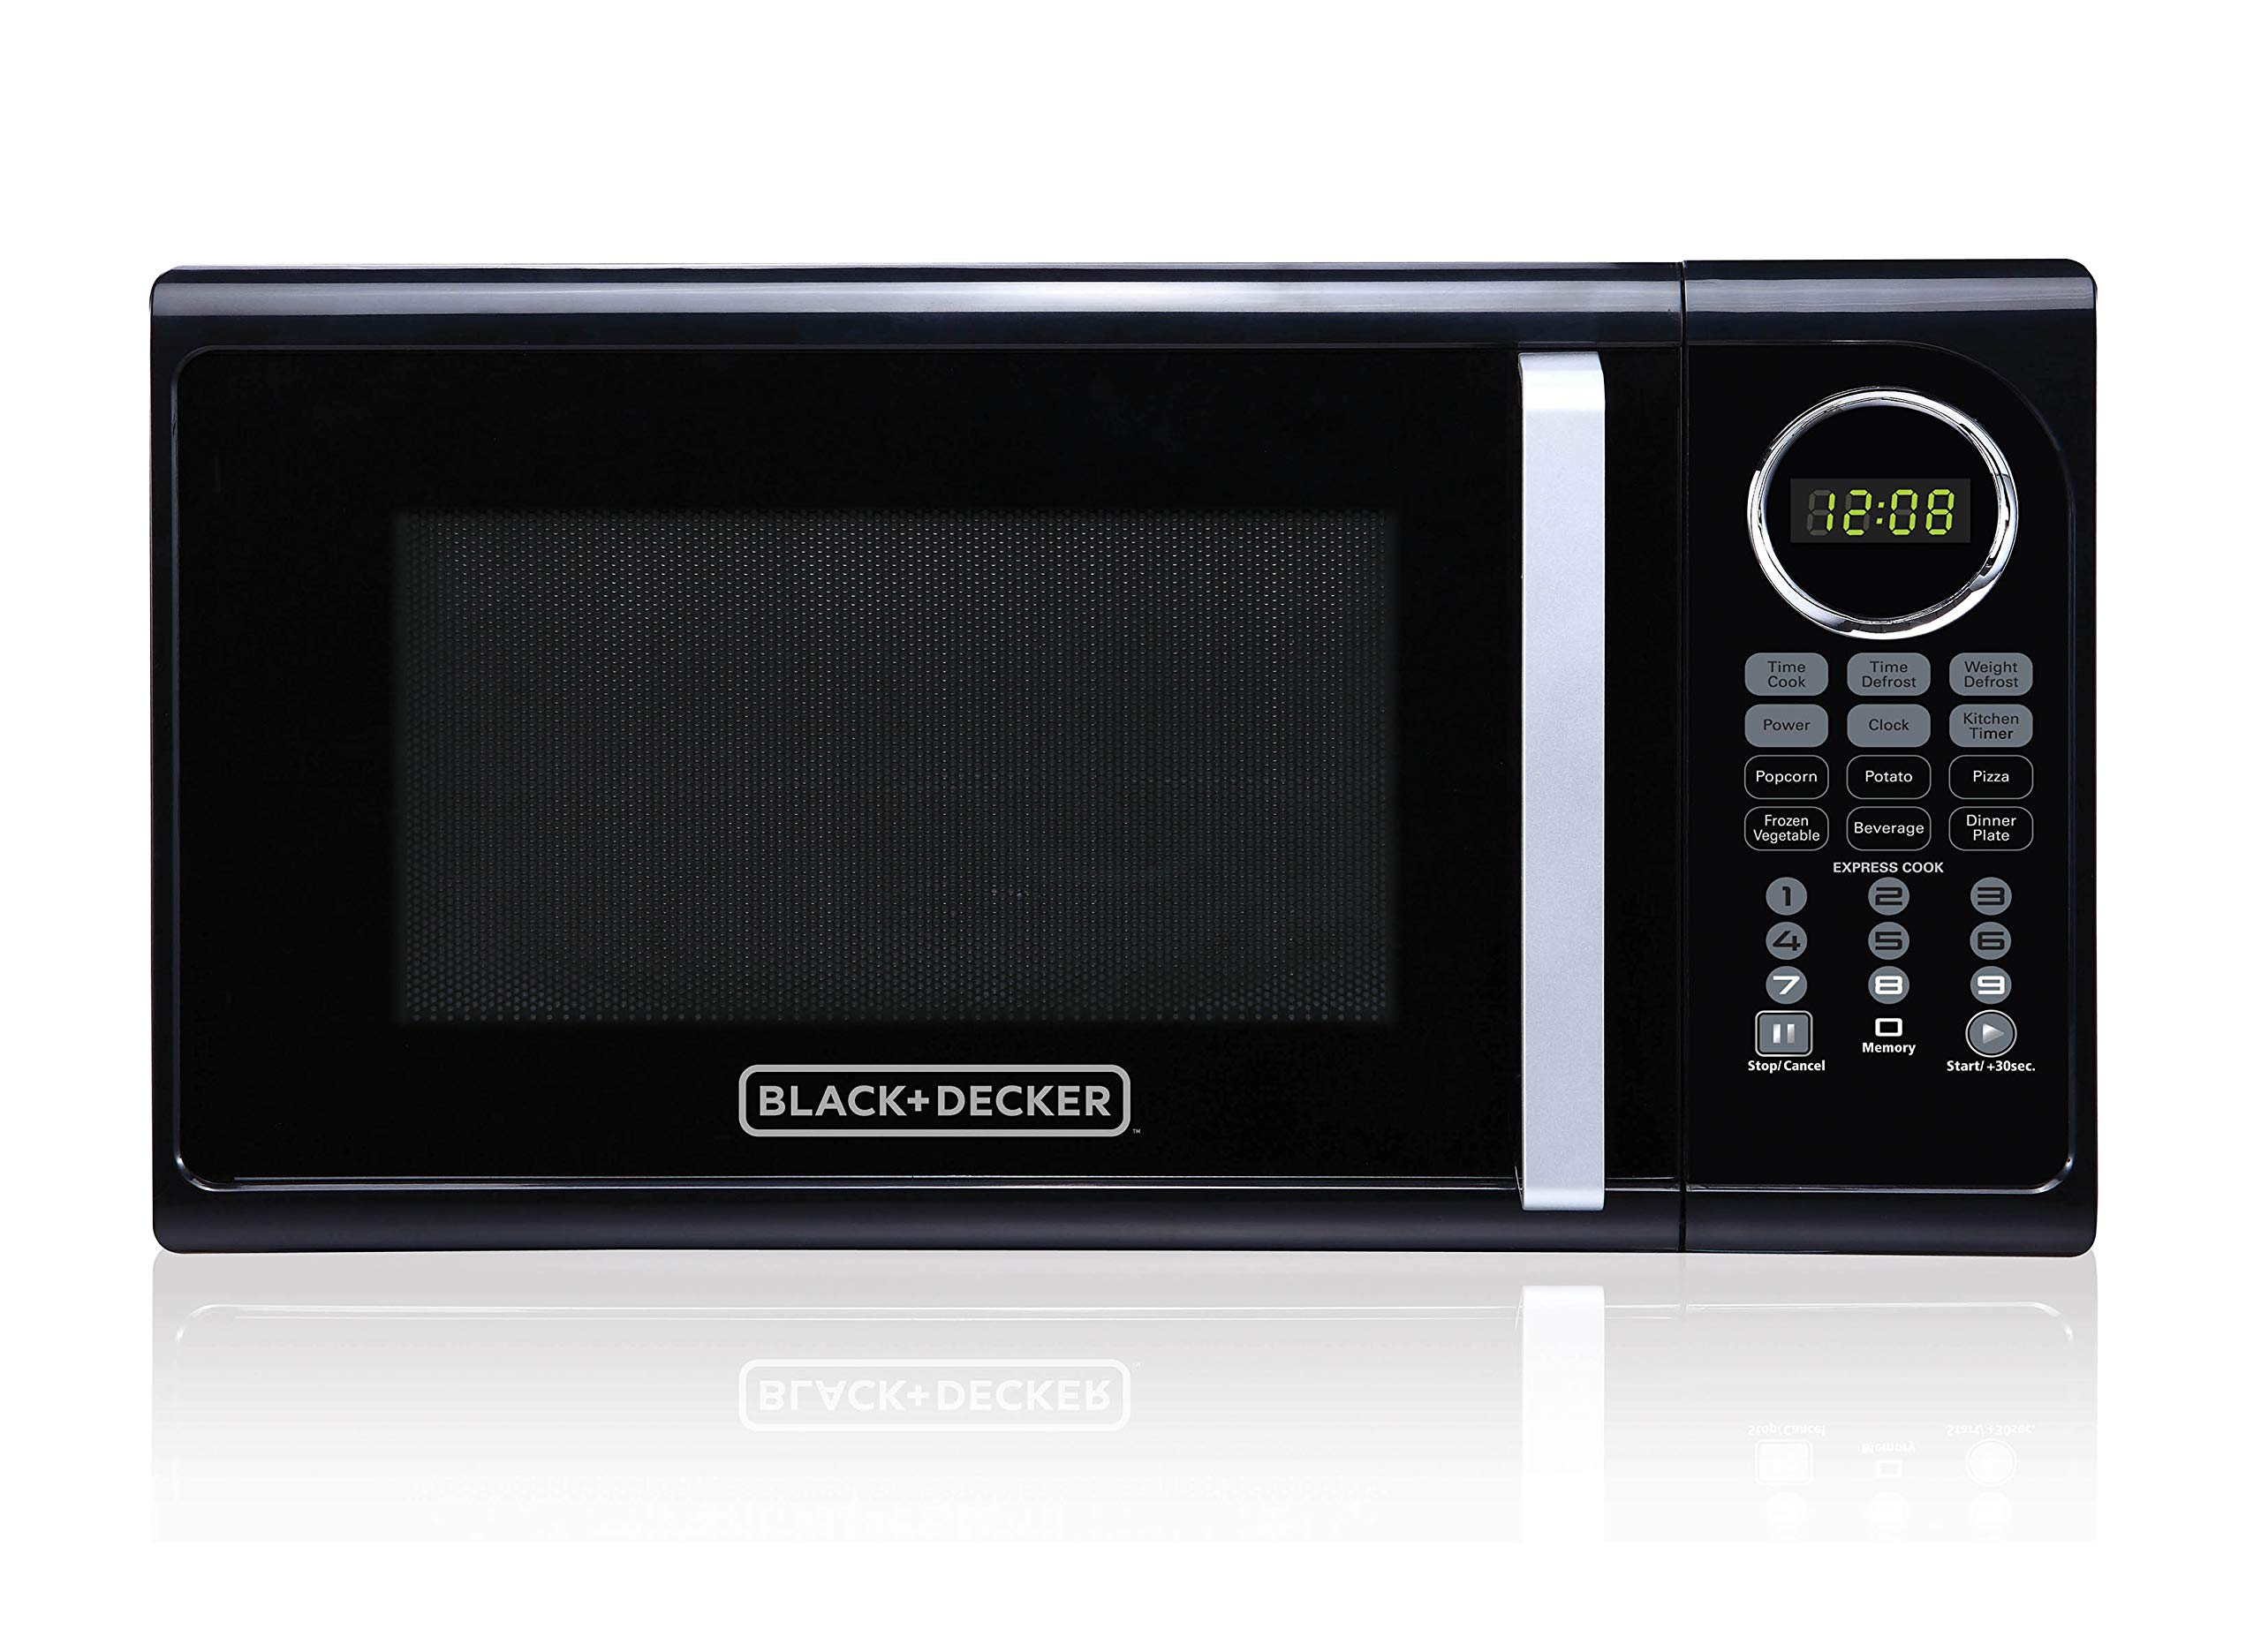 Black+Decker EM925ACP-P2 0.9 Cu. Ft. Digital Microwave, Black by BLACK+DECKER